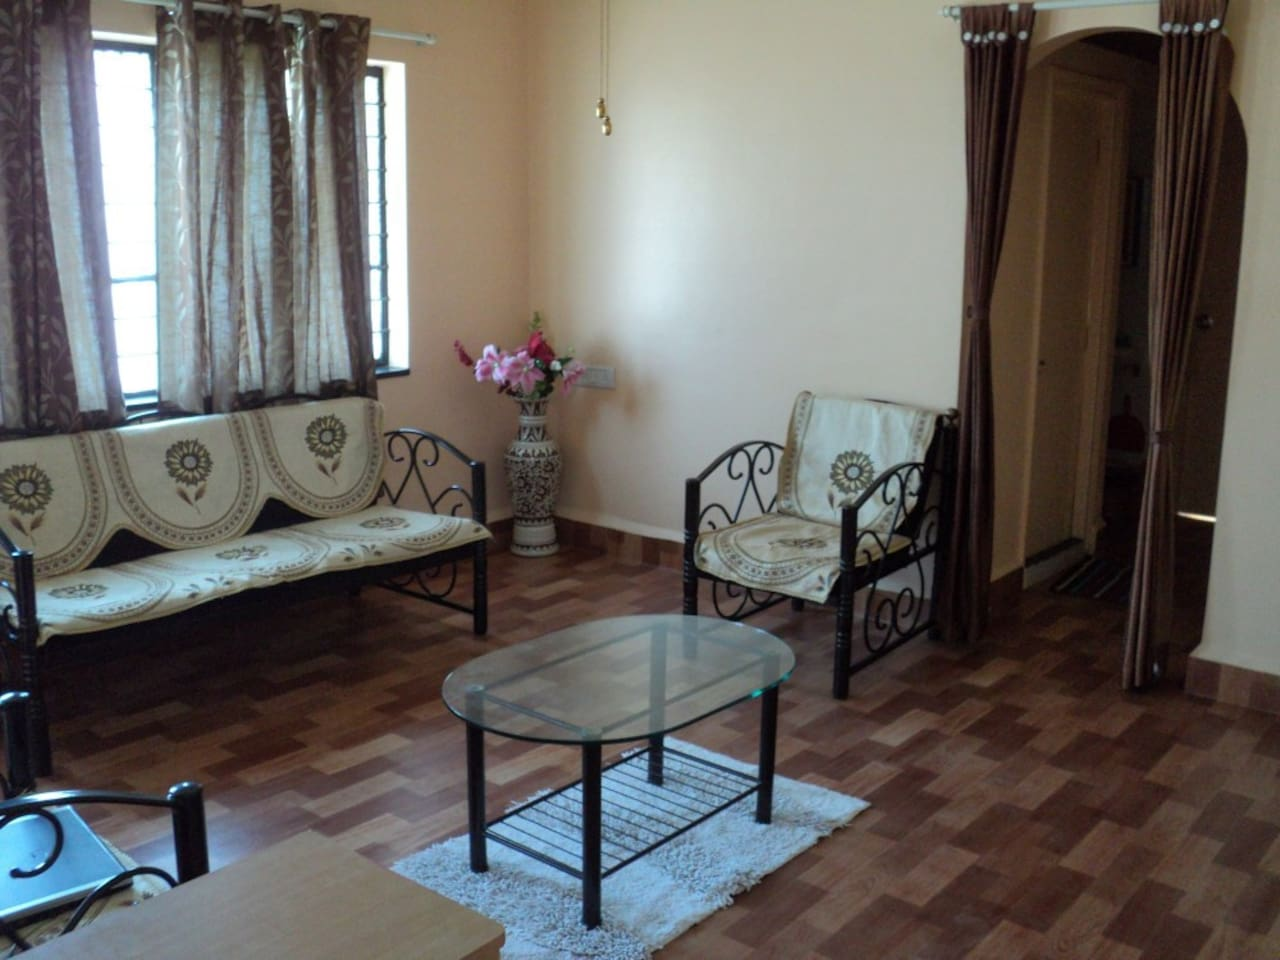 Living room of the apartment